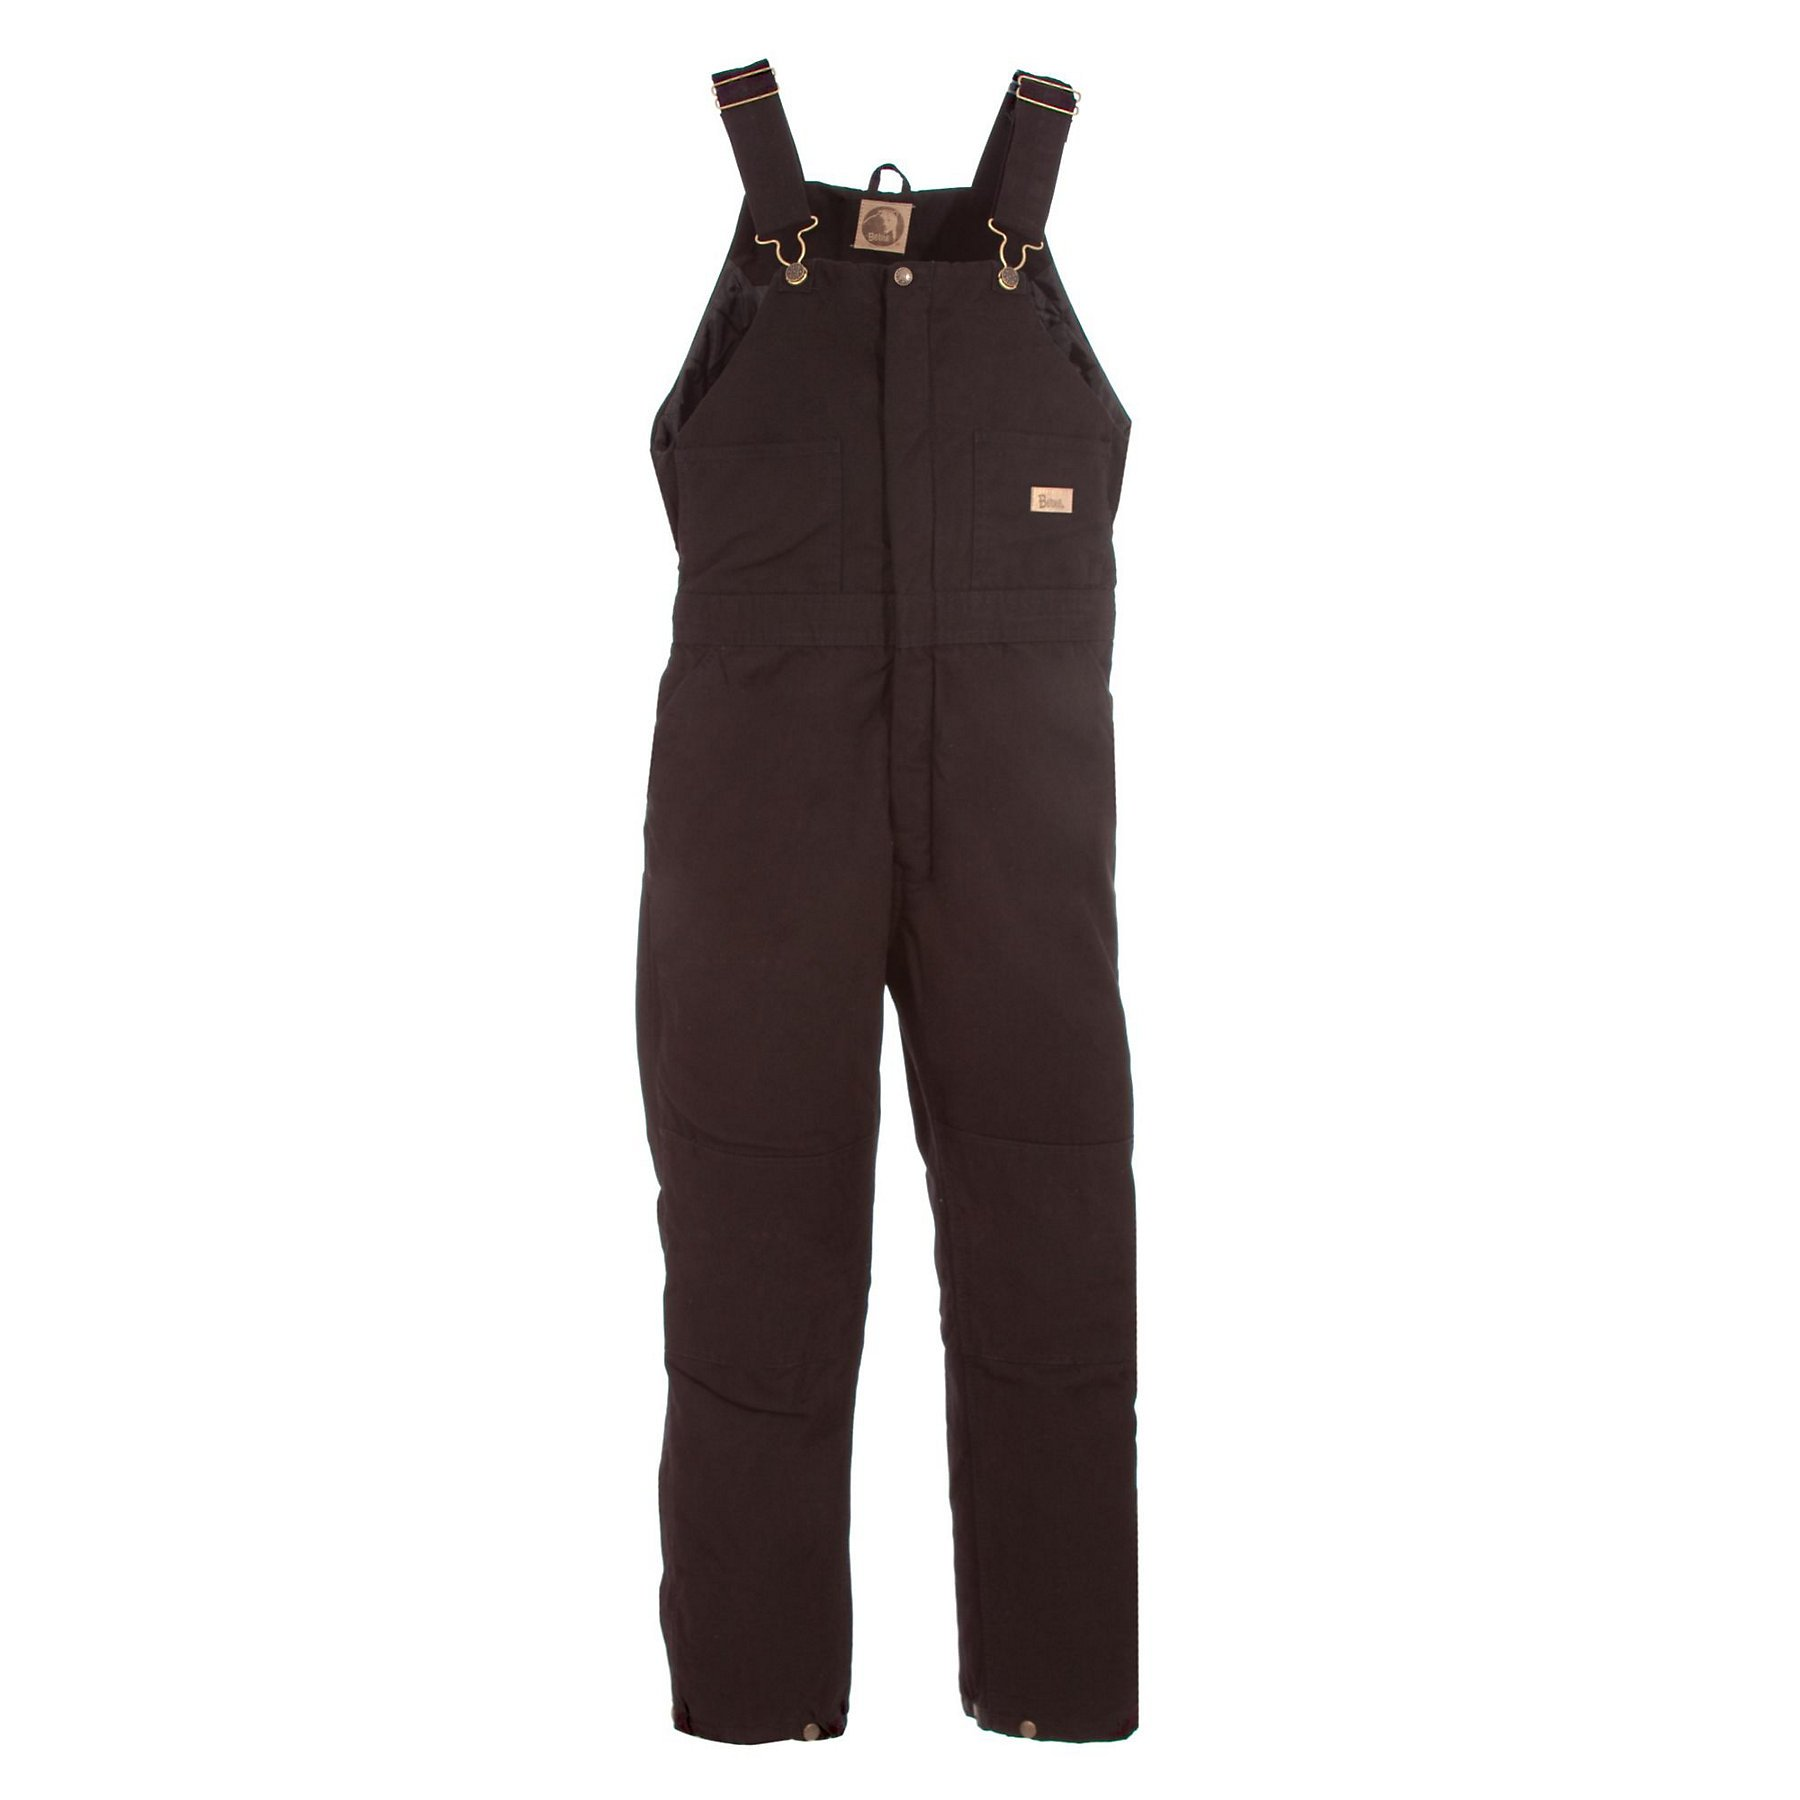 Berne Women's Washed Insulated Bib Overalls Regular Brown MR by Berne